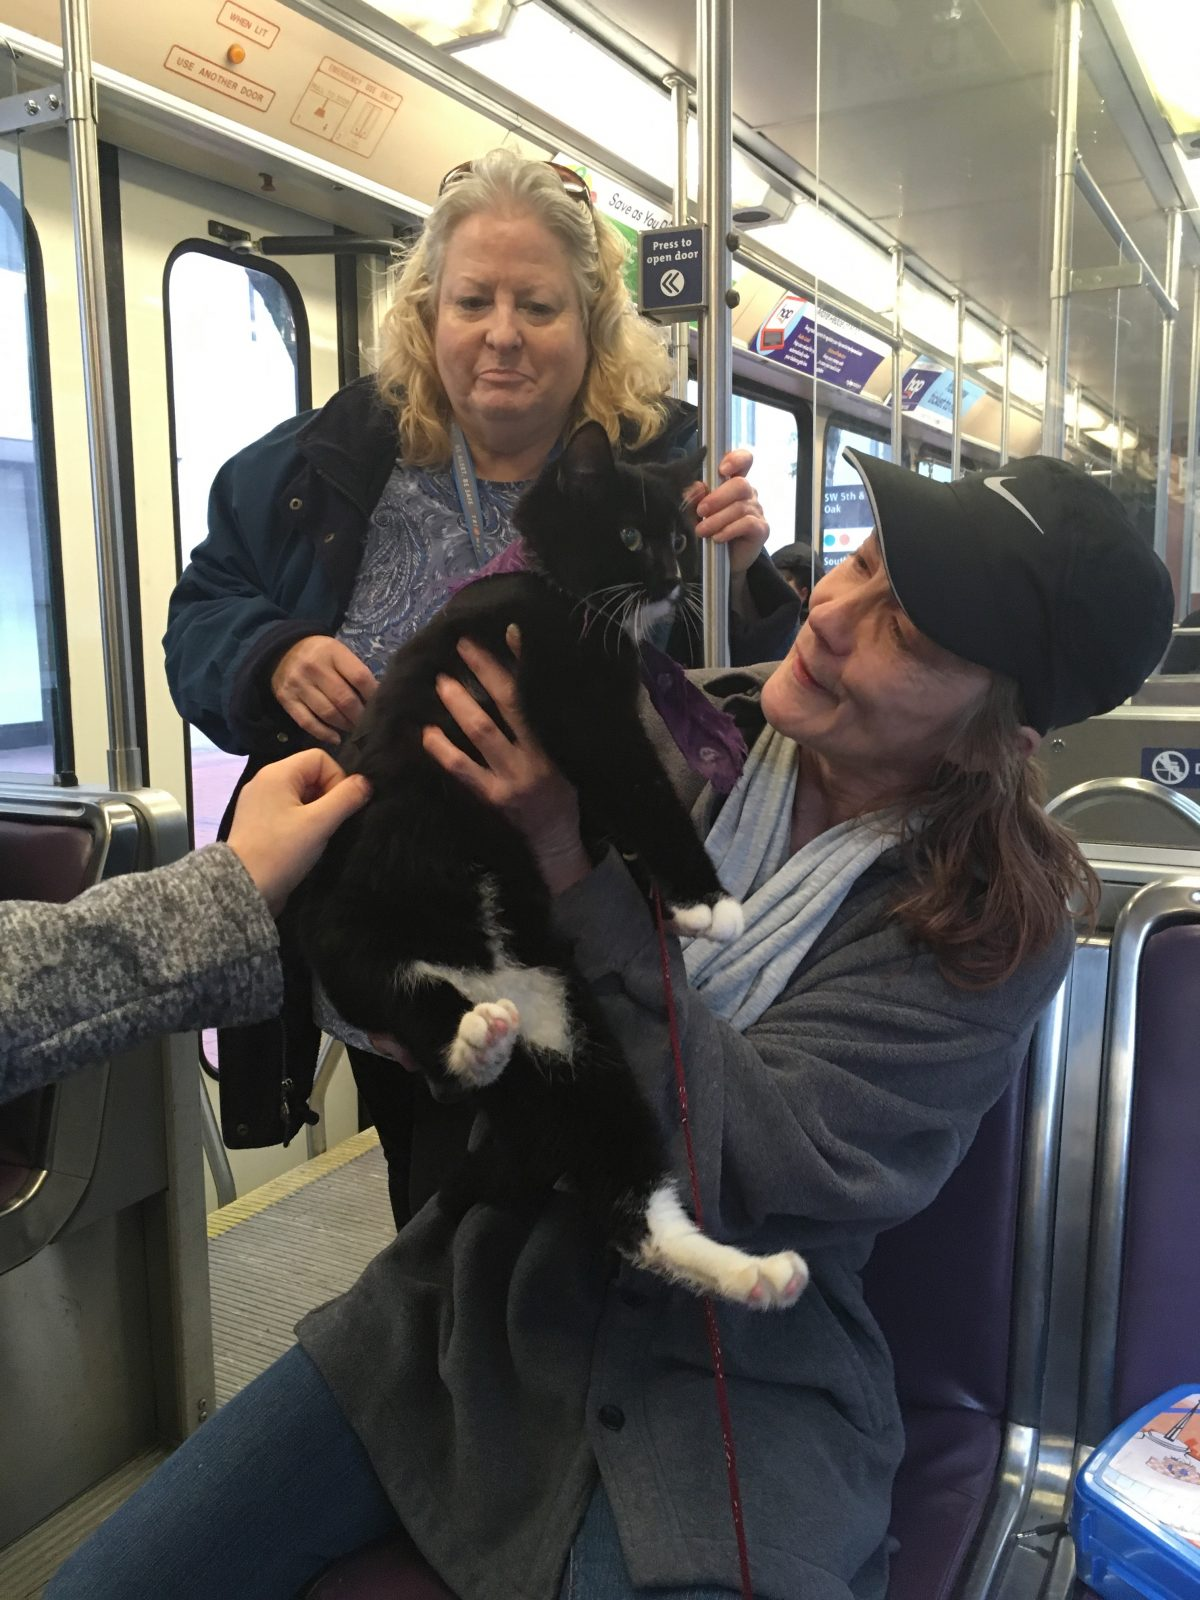 Trimet Rider Has Fans- and Plays Along- Great Ambassador!